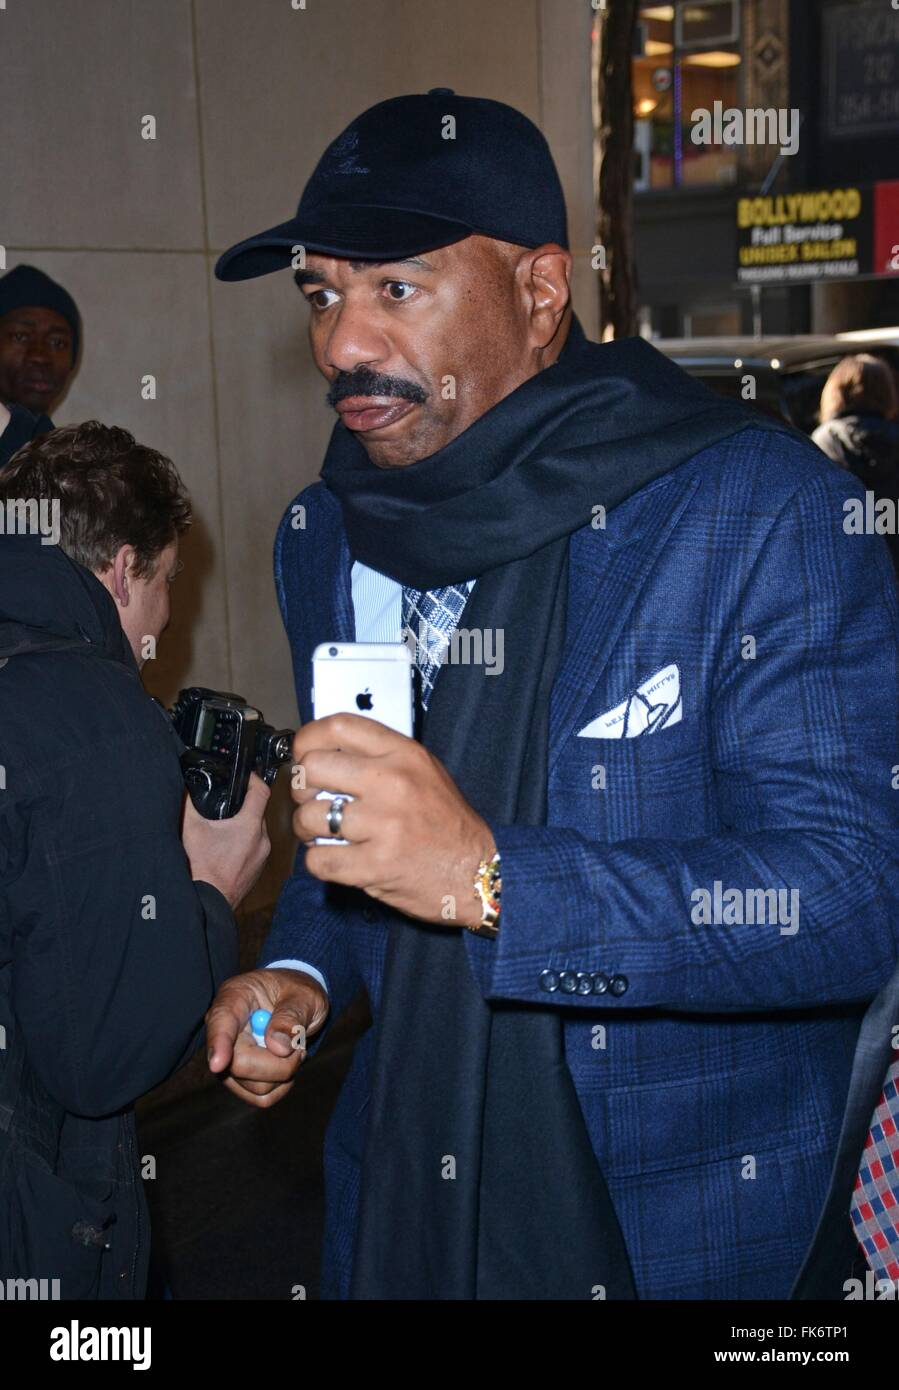 New York, USA. 07th Mar, 2016. Steve Harvey out and about for Celebrity Candids - MON, , New York, NY March 7, 2016. Stock Photo